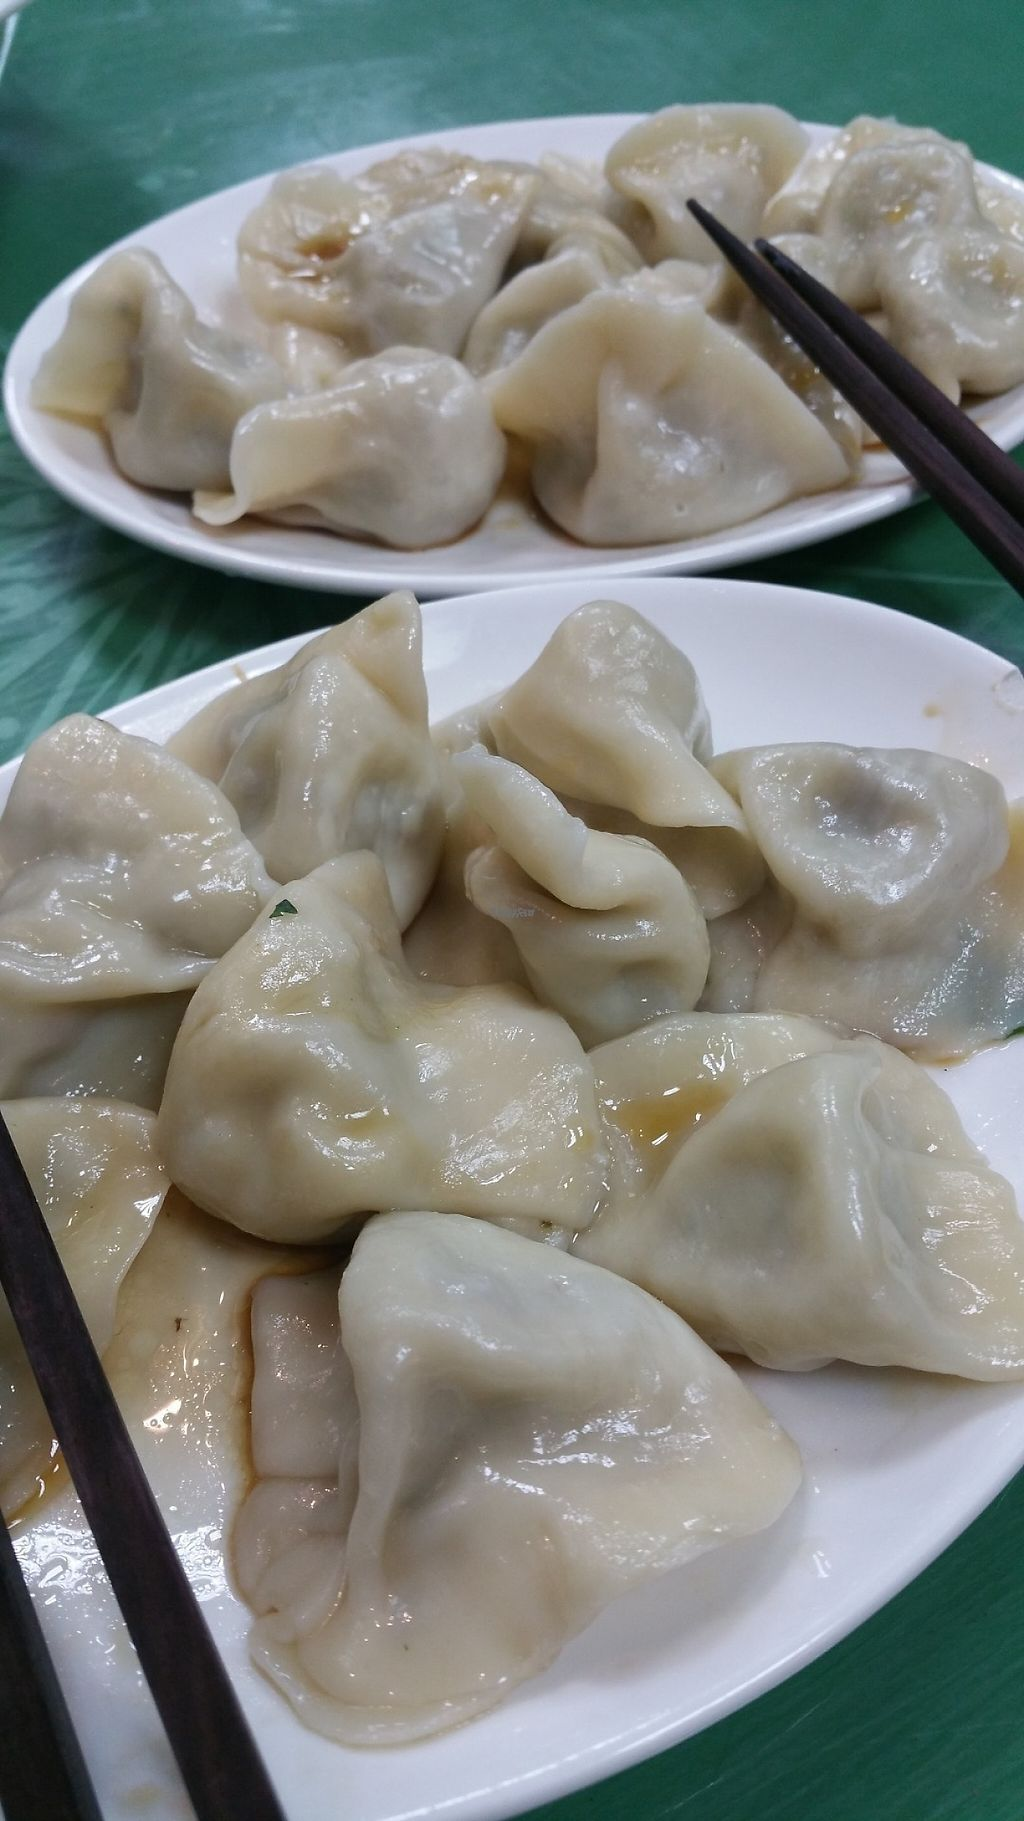 "Photo of Hong De Vegetarian  by <a href=""/members/profile/Rosa%20veg"">Rosa veg</a> <br/>Dumplings  <br/> April 22, 2017  - <a href='/contact/abuse/image/48396/251006'>Report</a>"